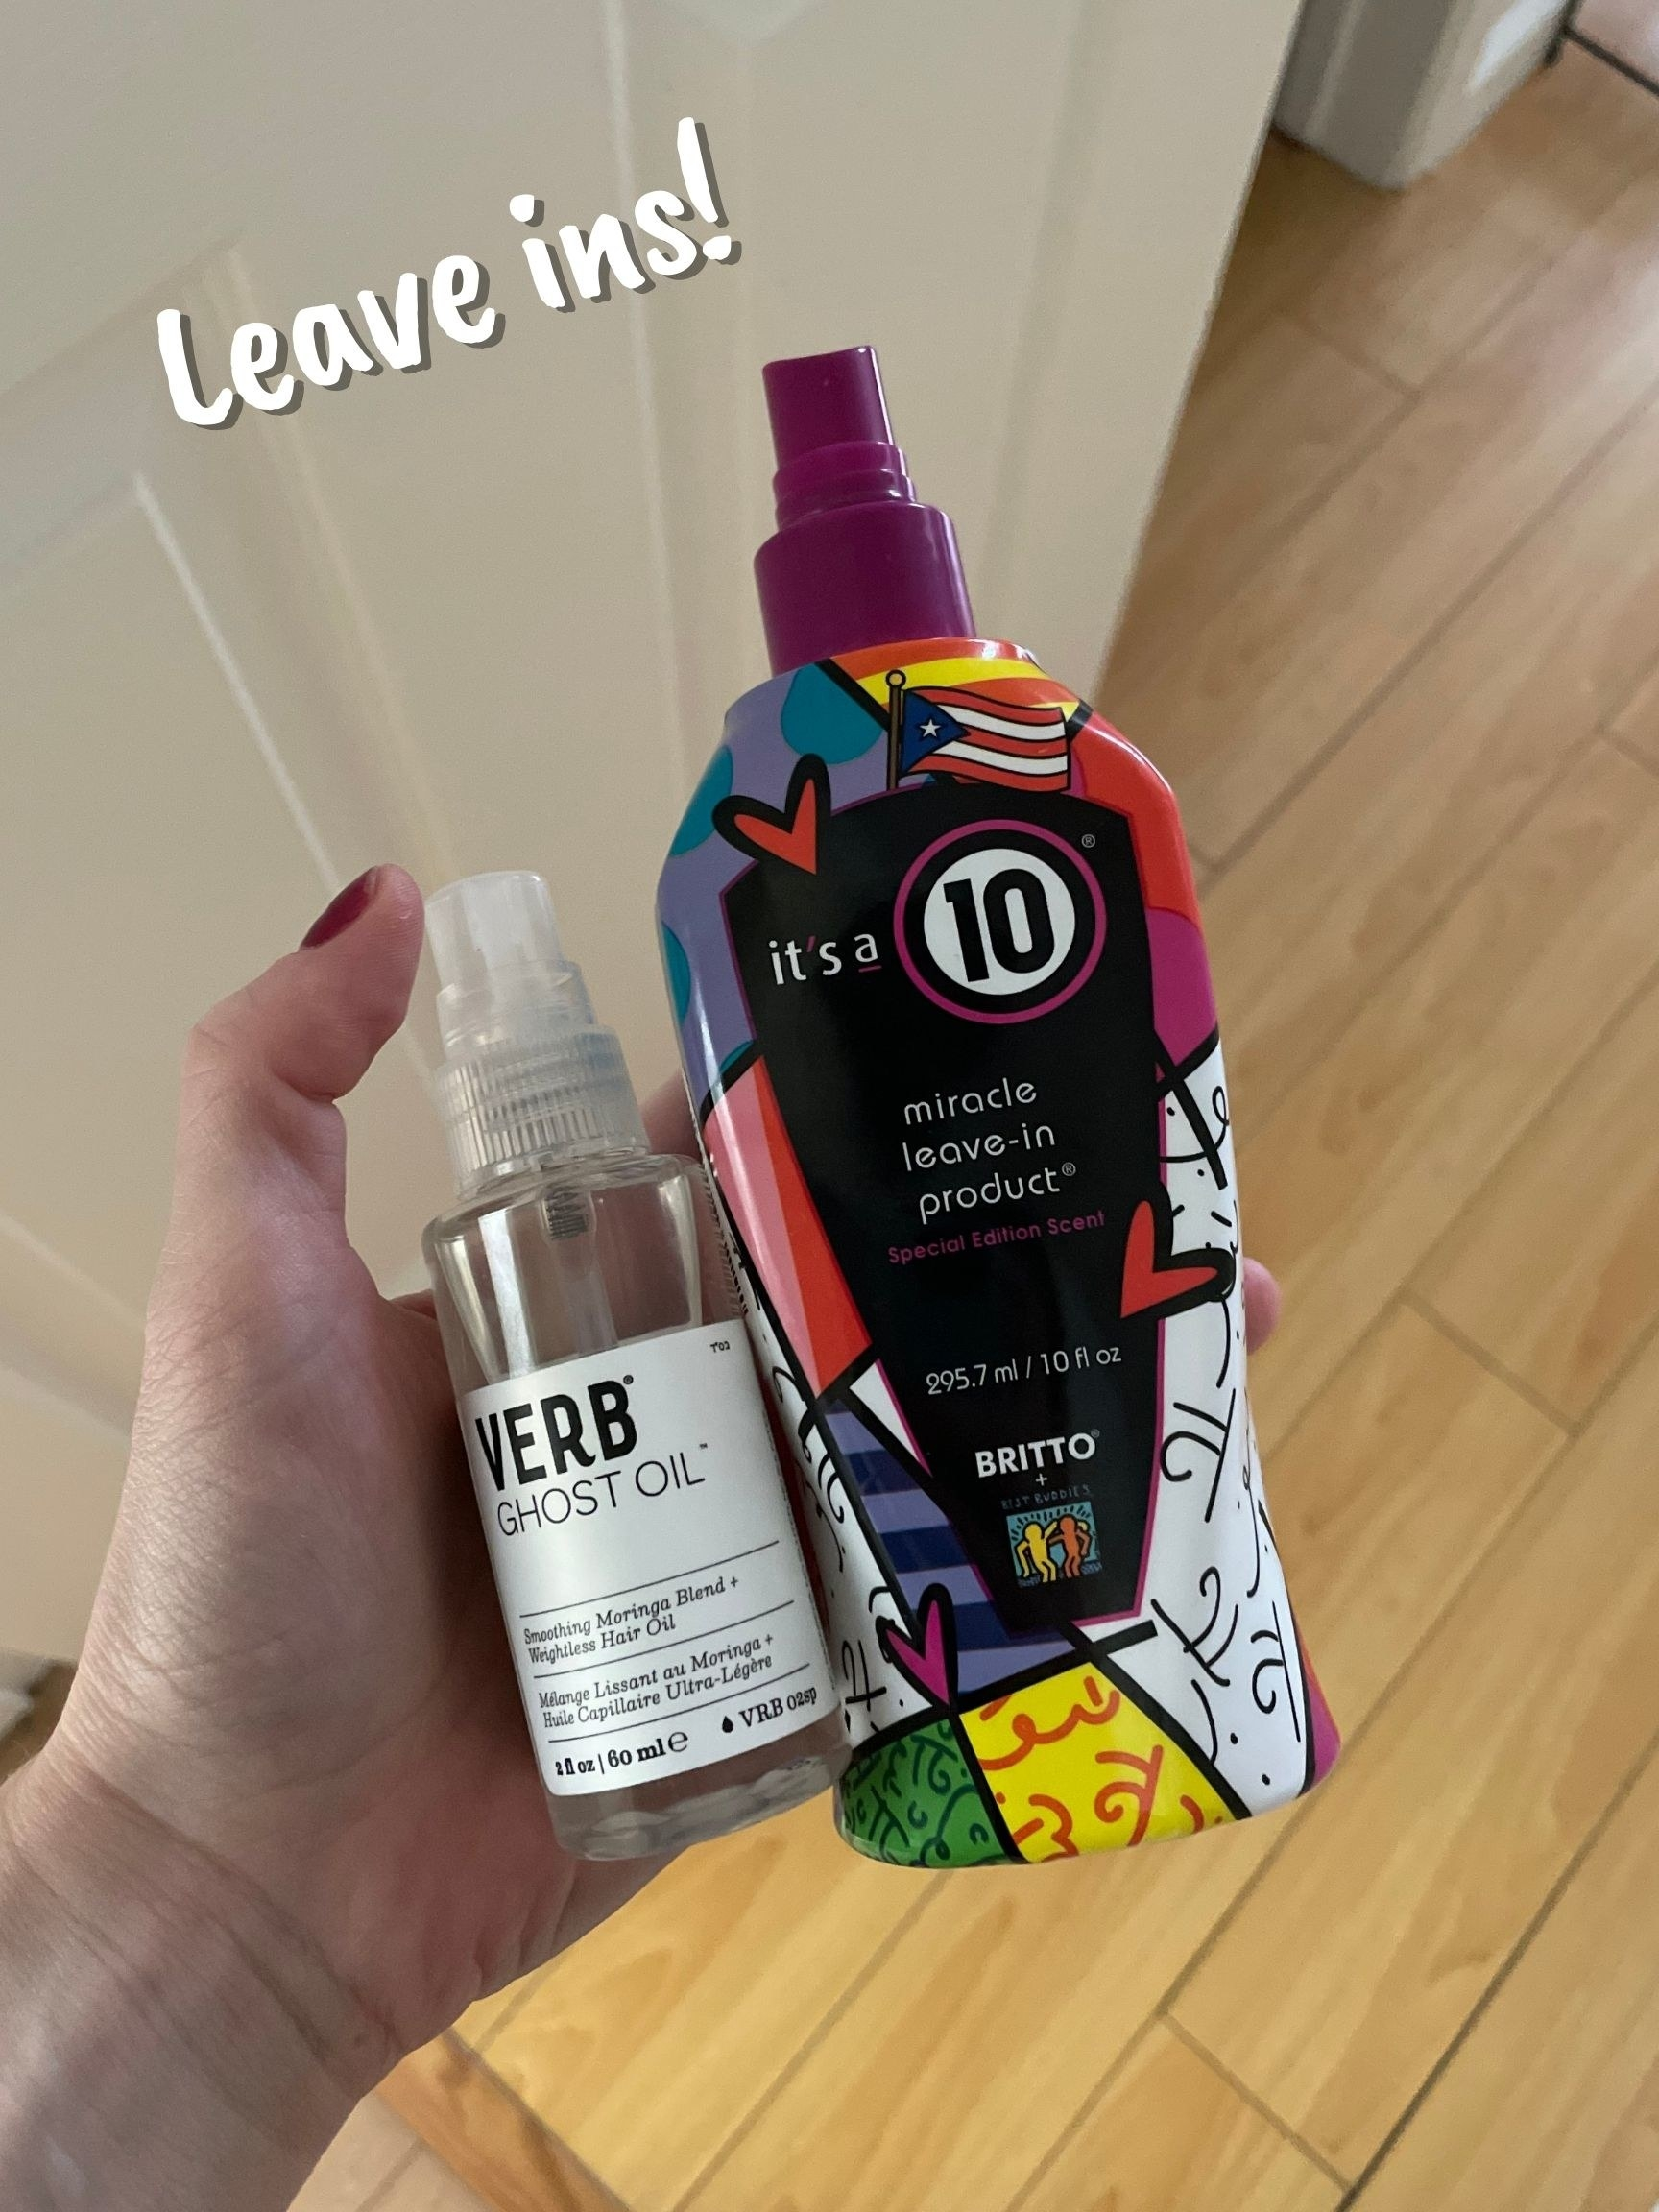 Verb Ghost Oil and It's a 10 spray